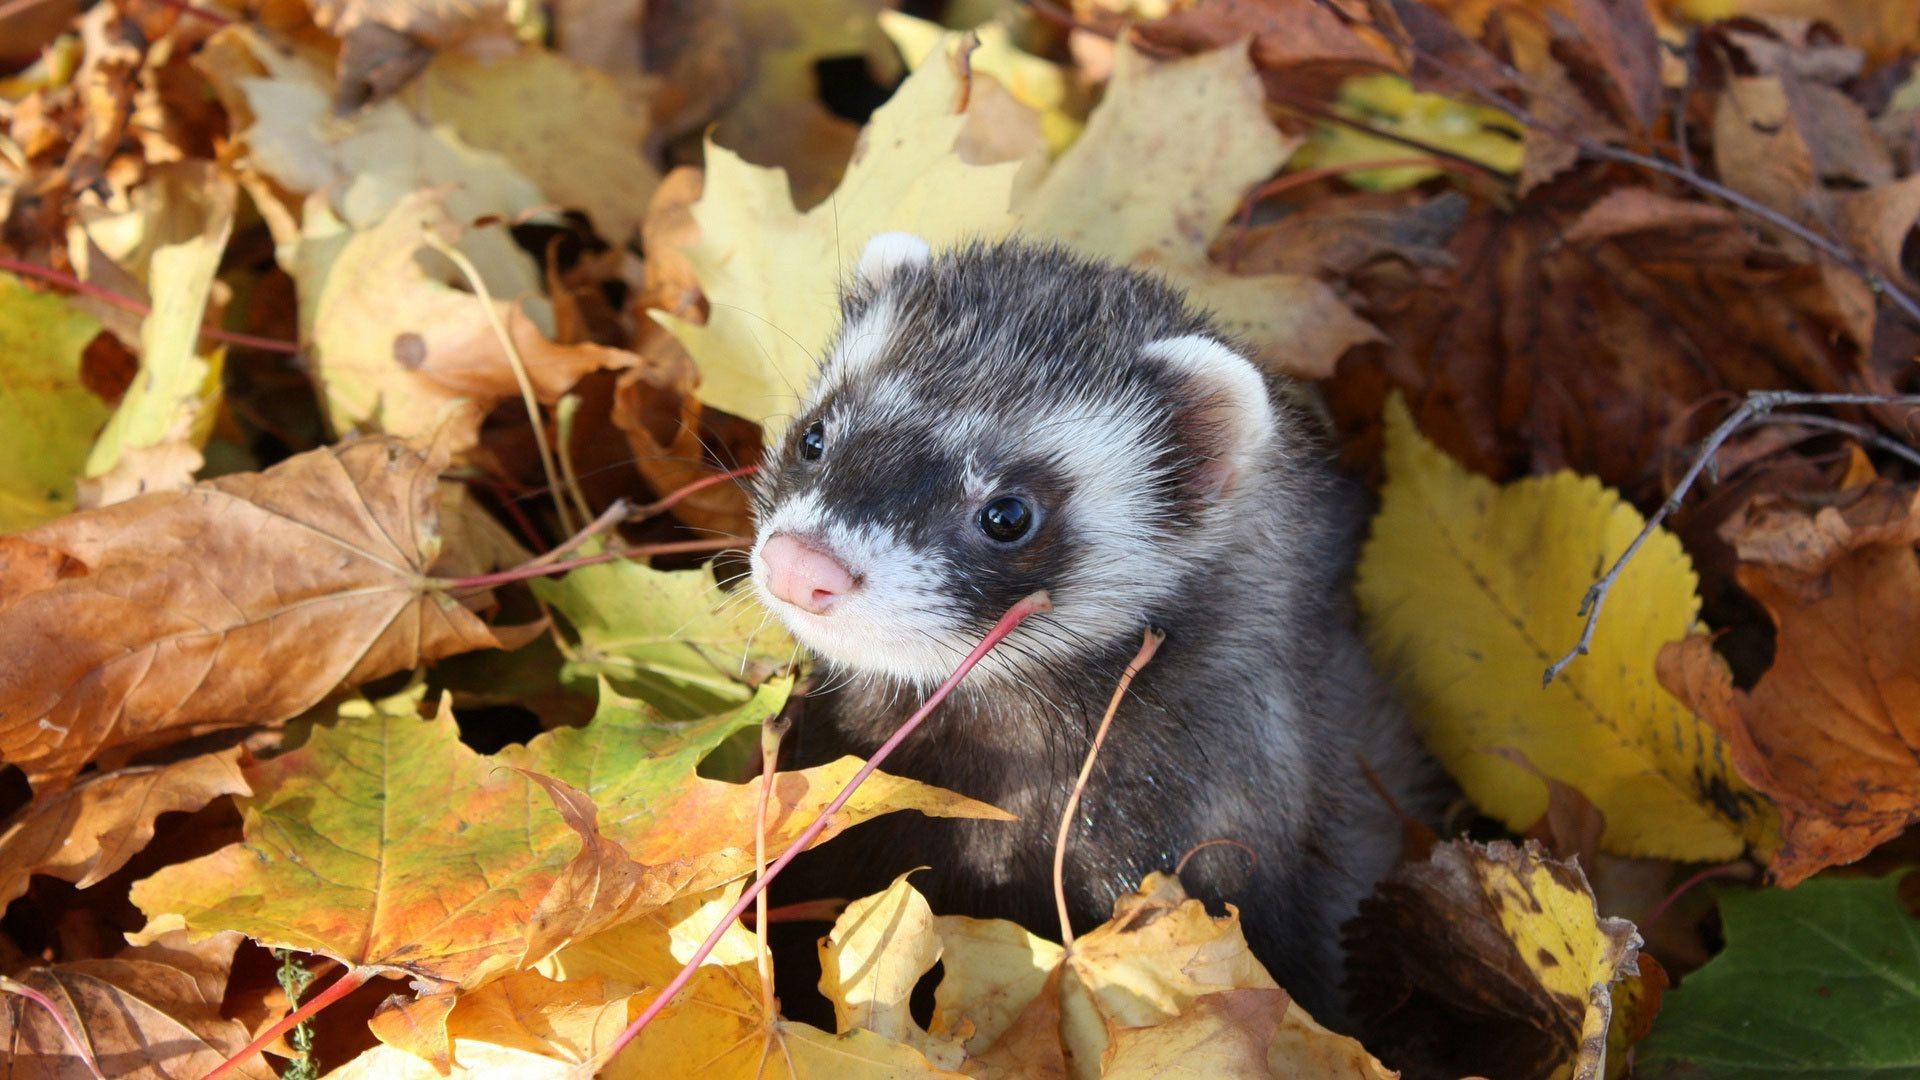 leaves the muzzle a ferret, ferrets fall